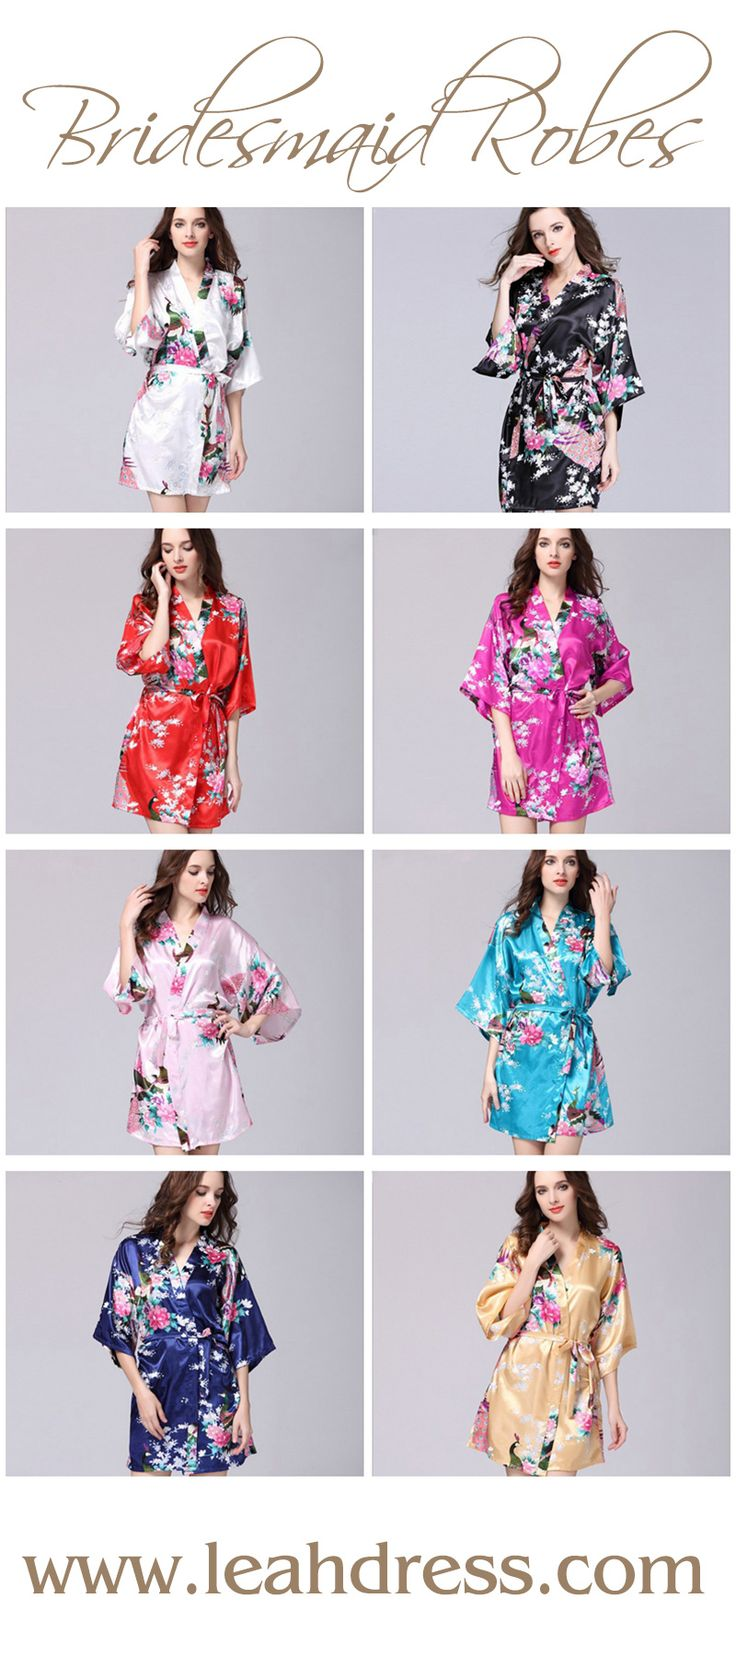 Gorgeous Cheap Bridesmaid robes | A bridesmaid gift your girls will love! Wear for getting ready on your wedding morning. shop at www.leahdress.com